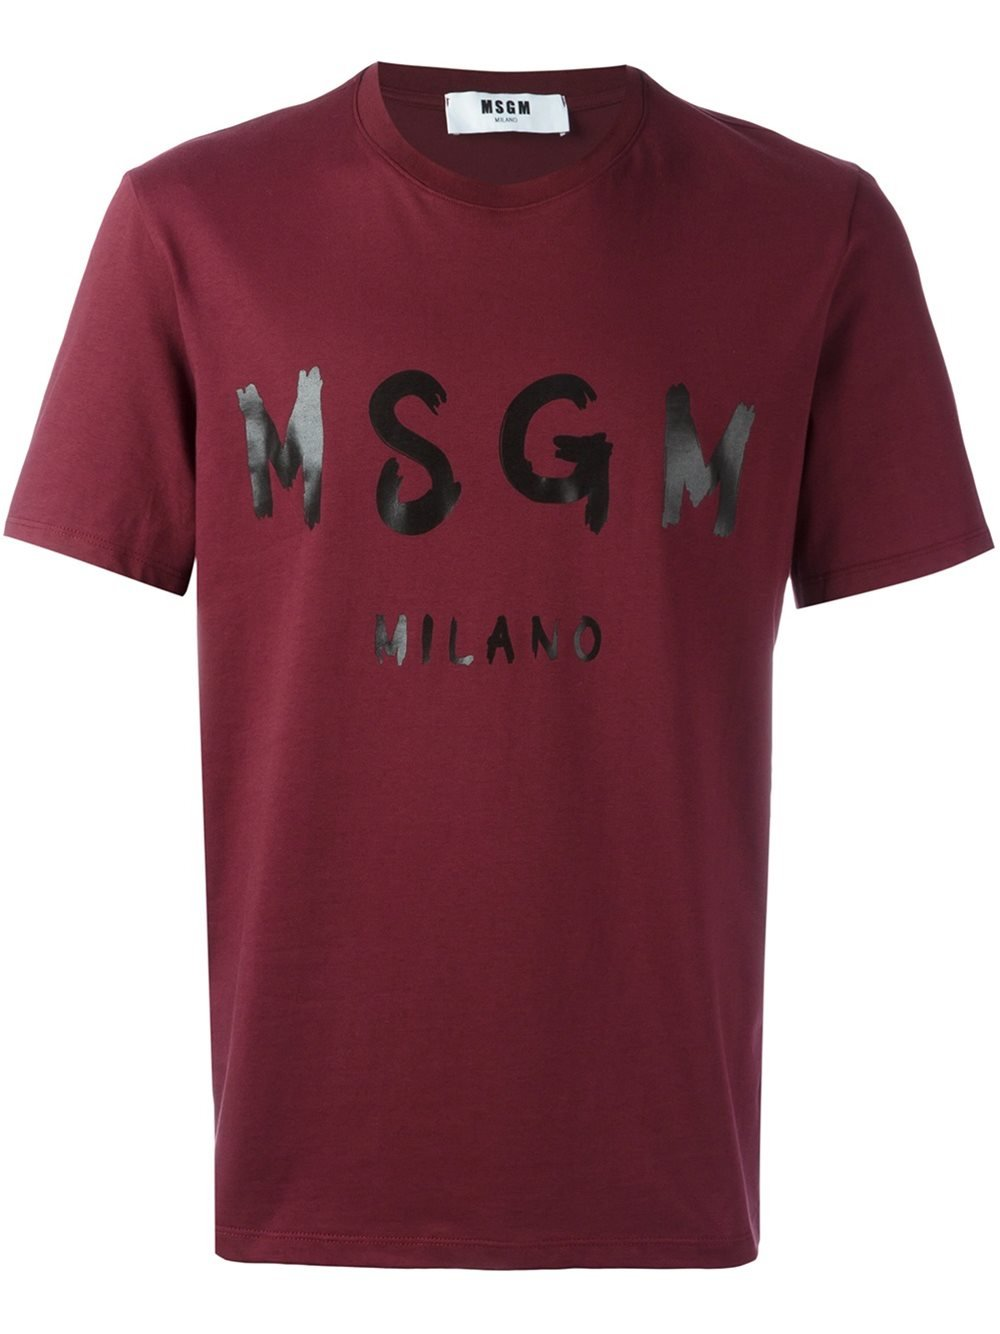 Msgm Logo Print T Shirt In Multicolor For Men Pink Purple